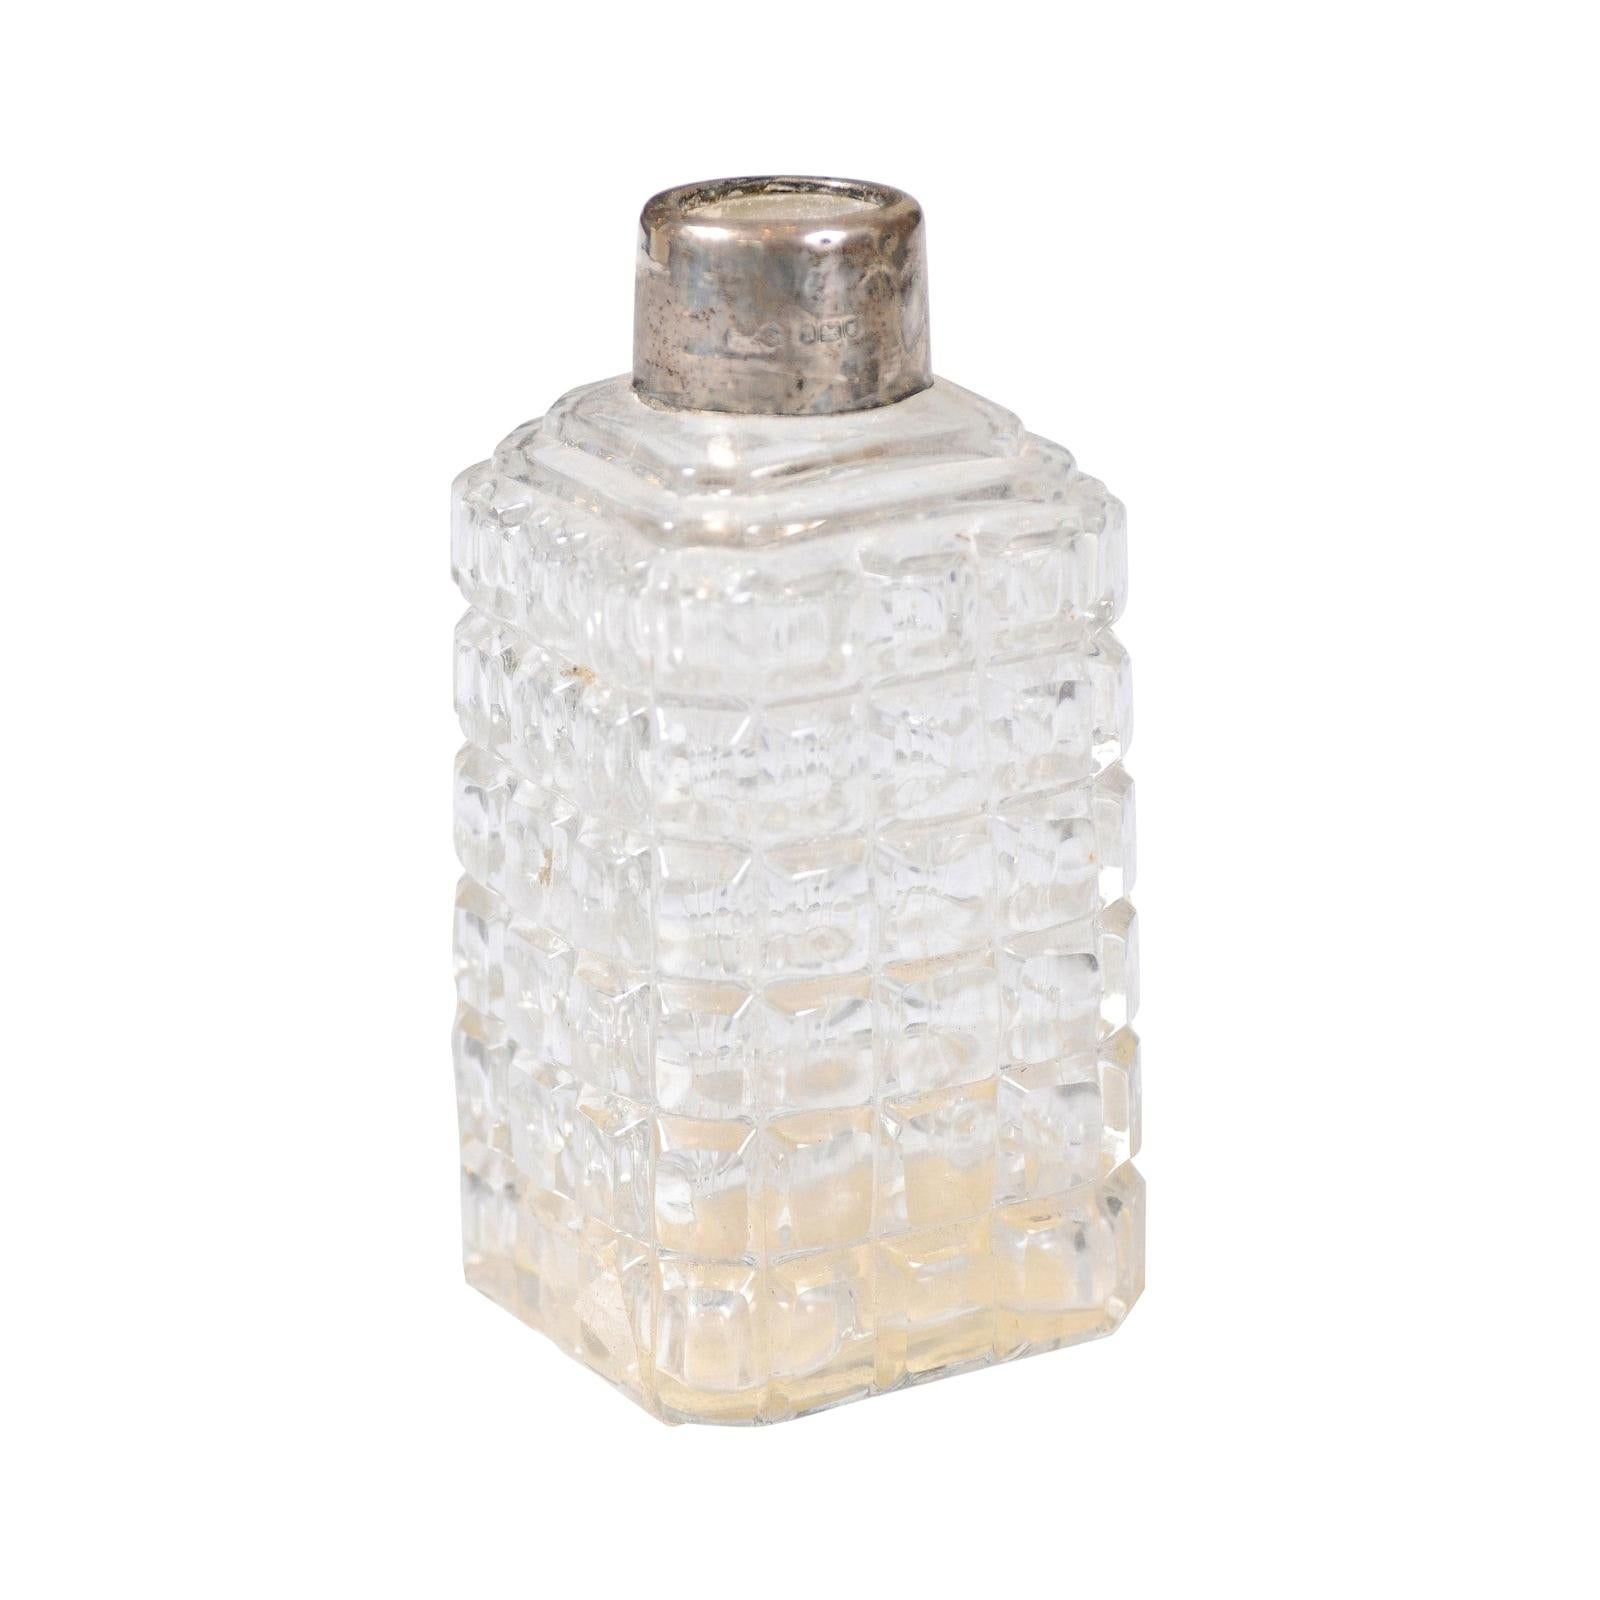 Petite French 1860s Napoleon III Period Crystal Toiletry Bottle with Silver Neck